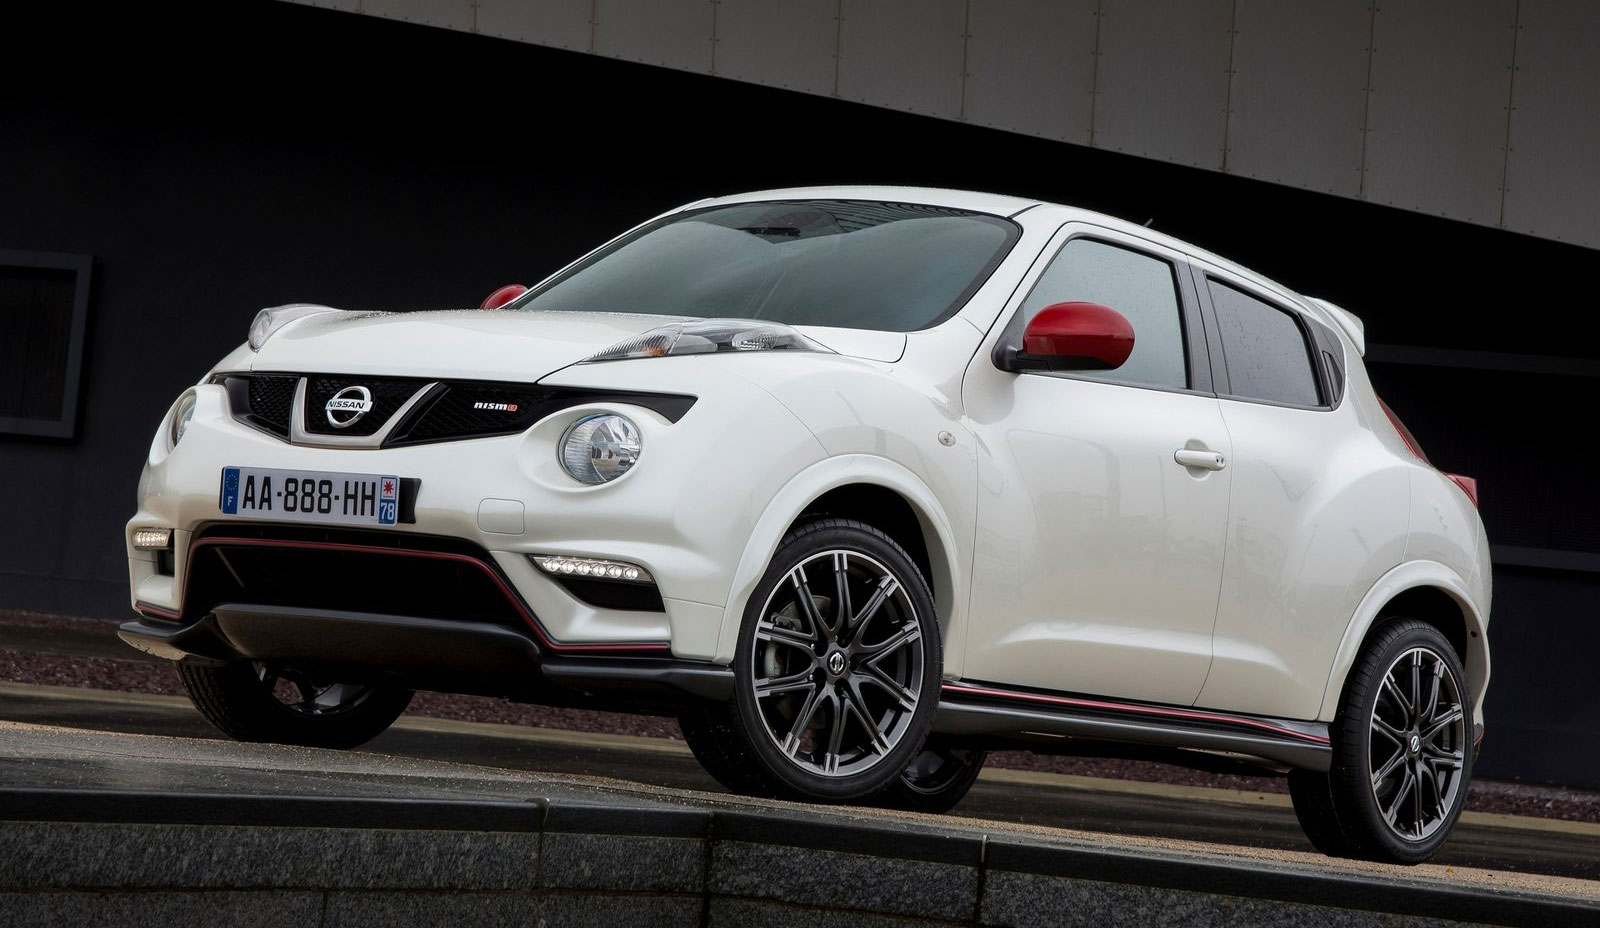 Nissan Juke Nismo launched in Japan and Europe Paul Tan ...